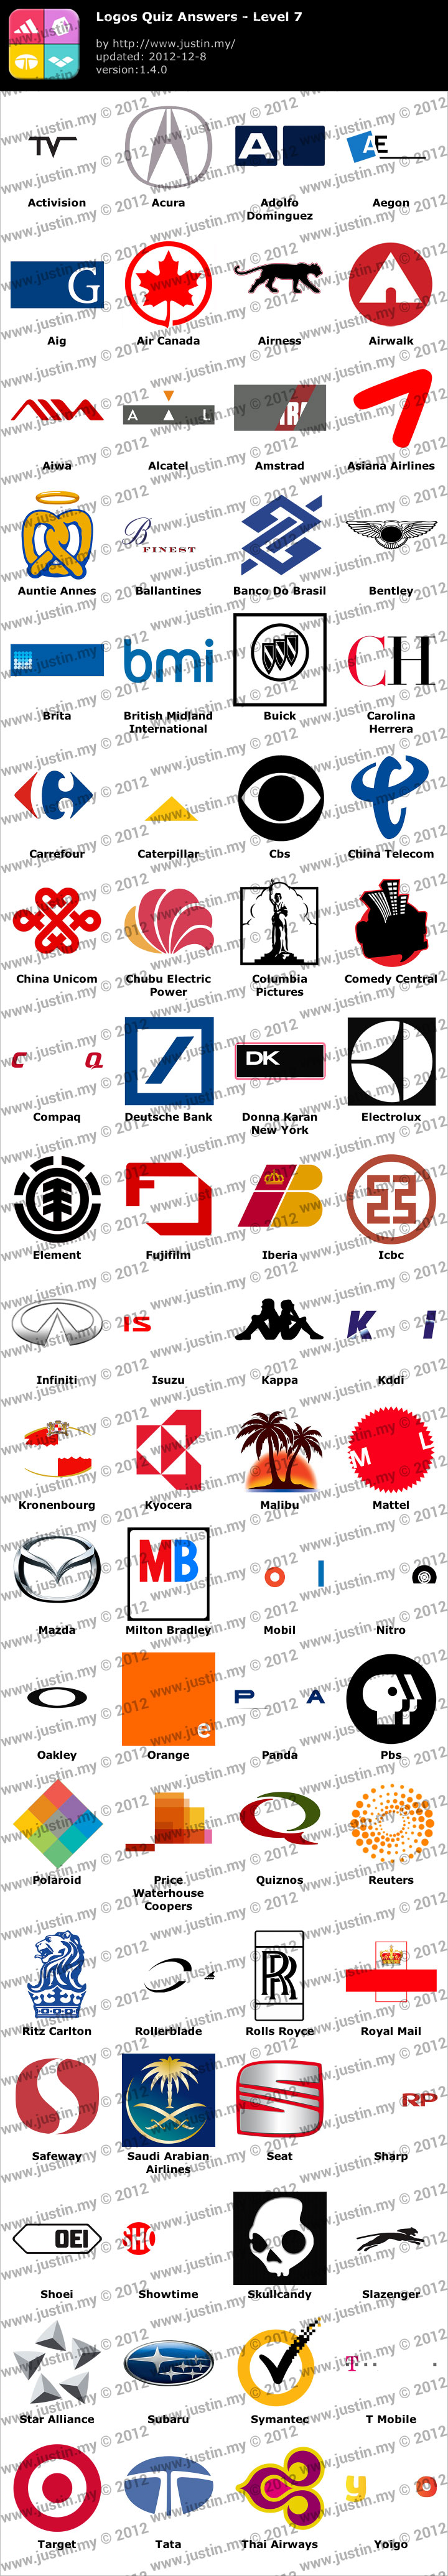 logo quiz answers for iphone ipad android � page 7